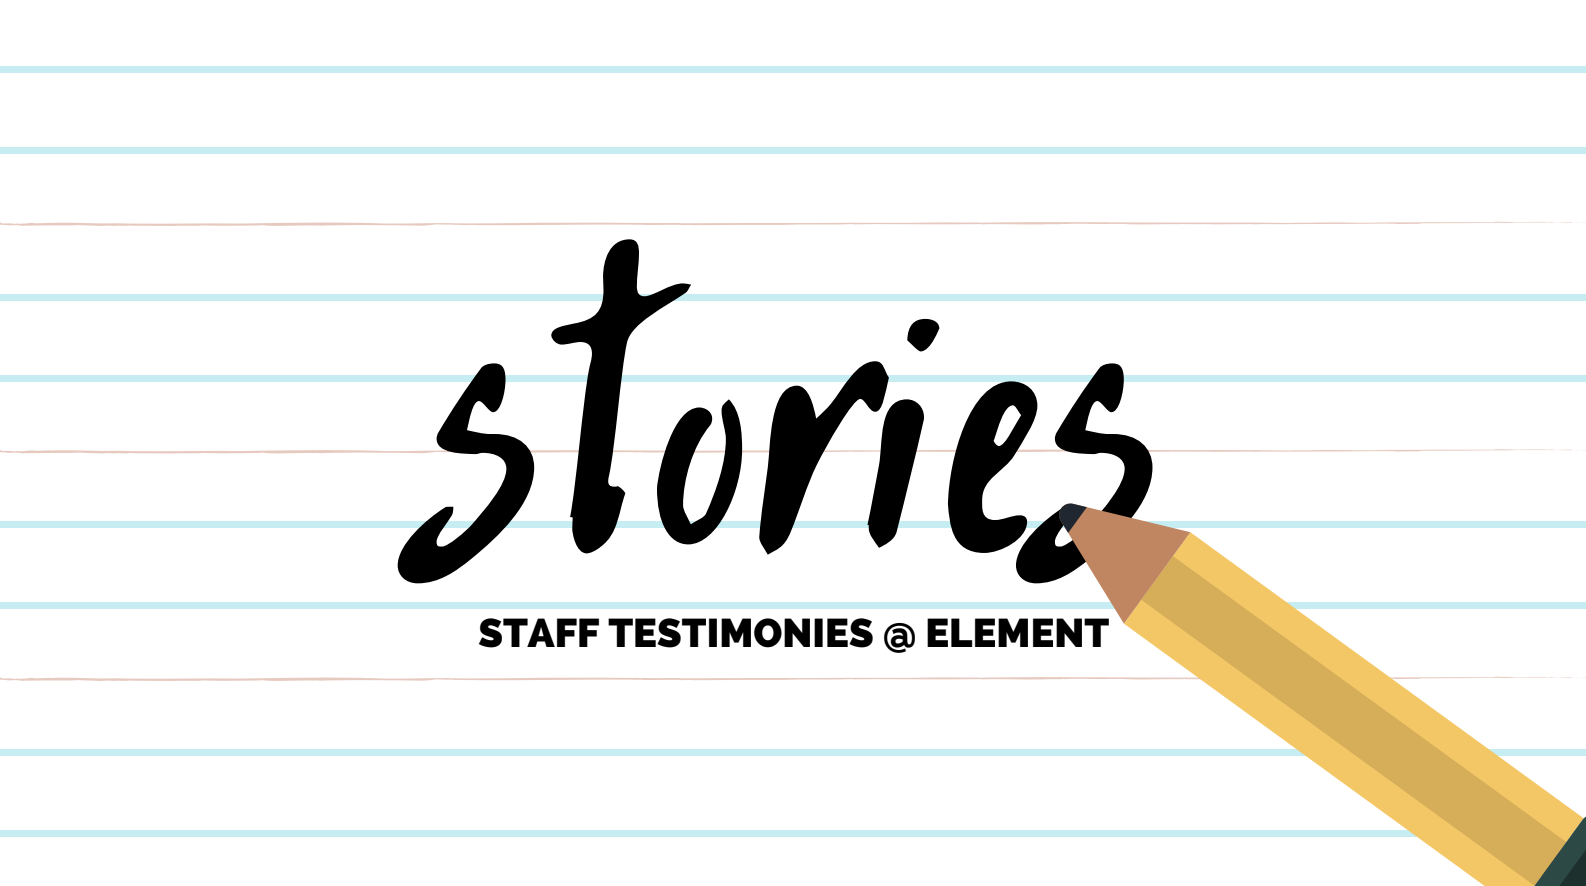 Friday Stories - Come hear stories of how the Element staff came to know and believe in Christianity!